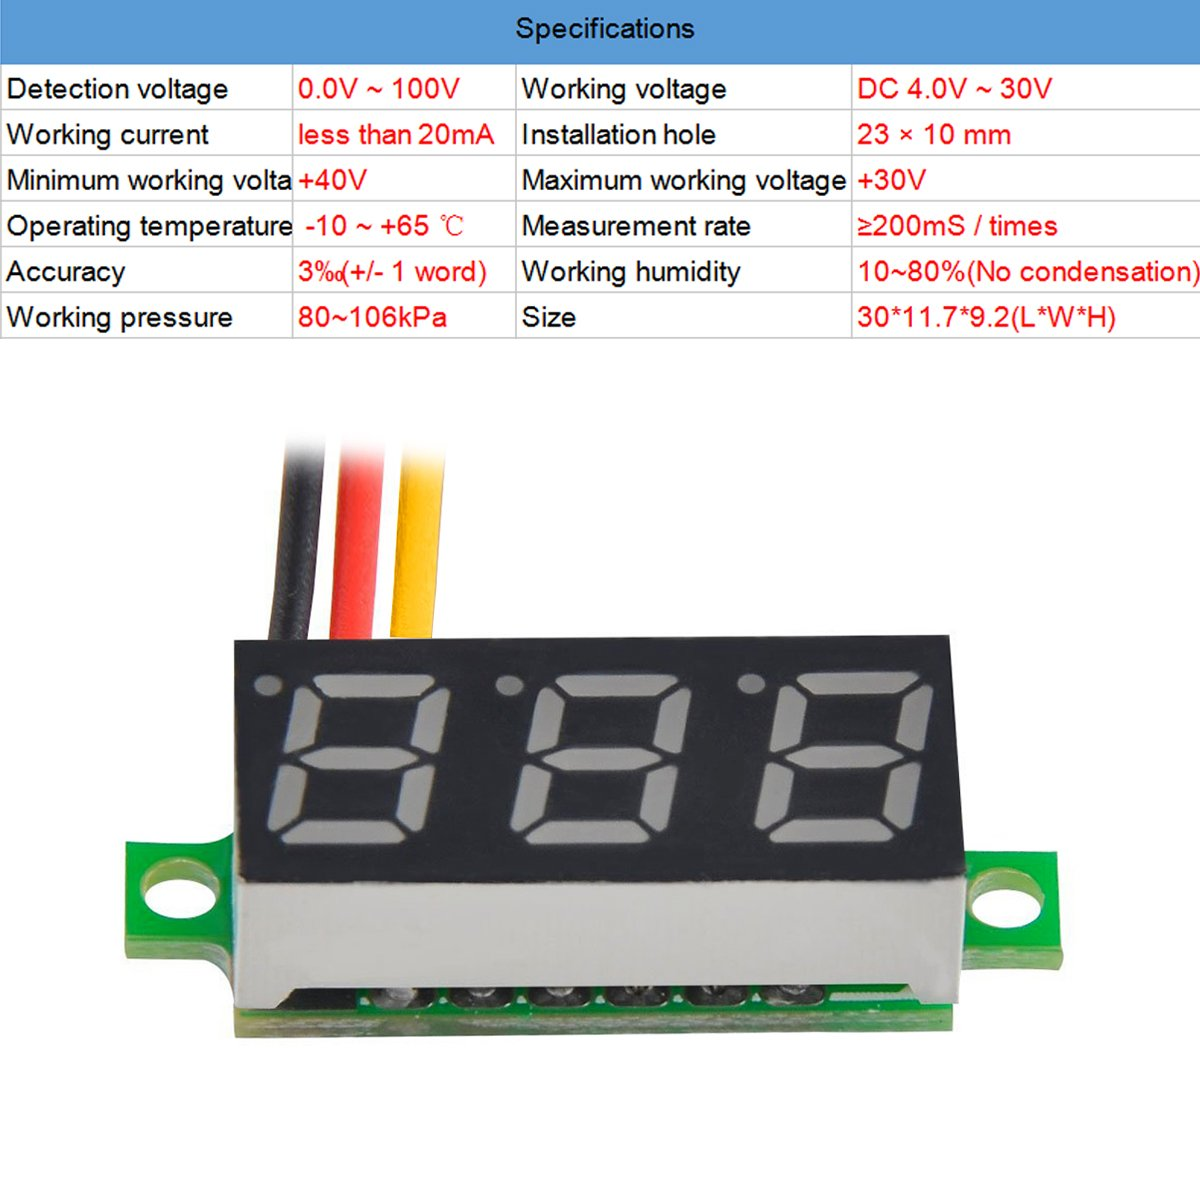 MakerFocus 5pcs Mini Digital Voltmeter DC 0.28 Inch Three-Line DC 0-100V Mini Digital Voltmeter Gauge Tester LED Display Reverse Polarity Protection and Accurate Pressure Measurement 5 Colours by MakerFocus (Image #3)